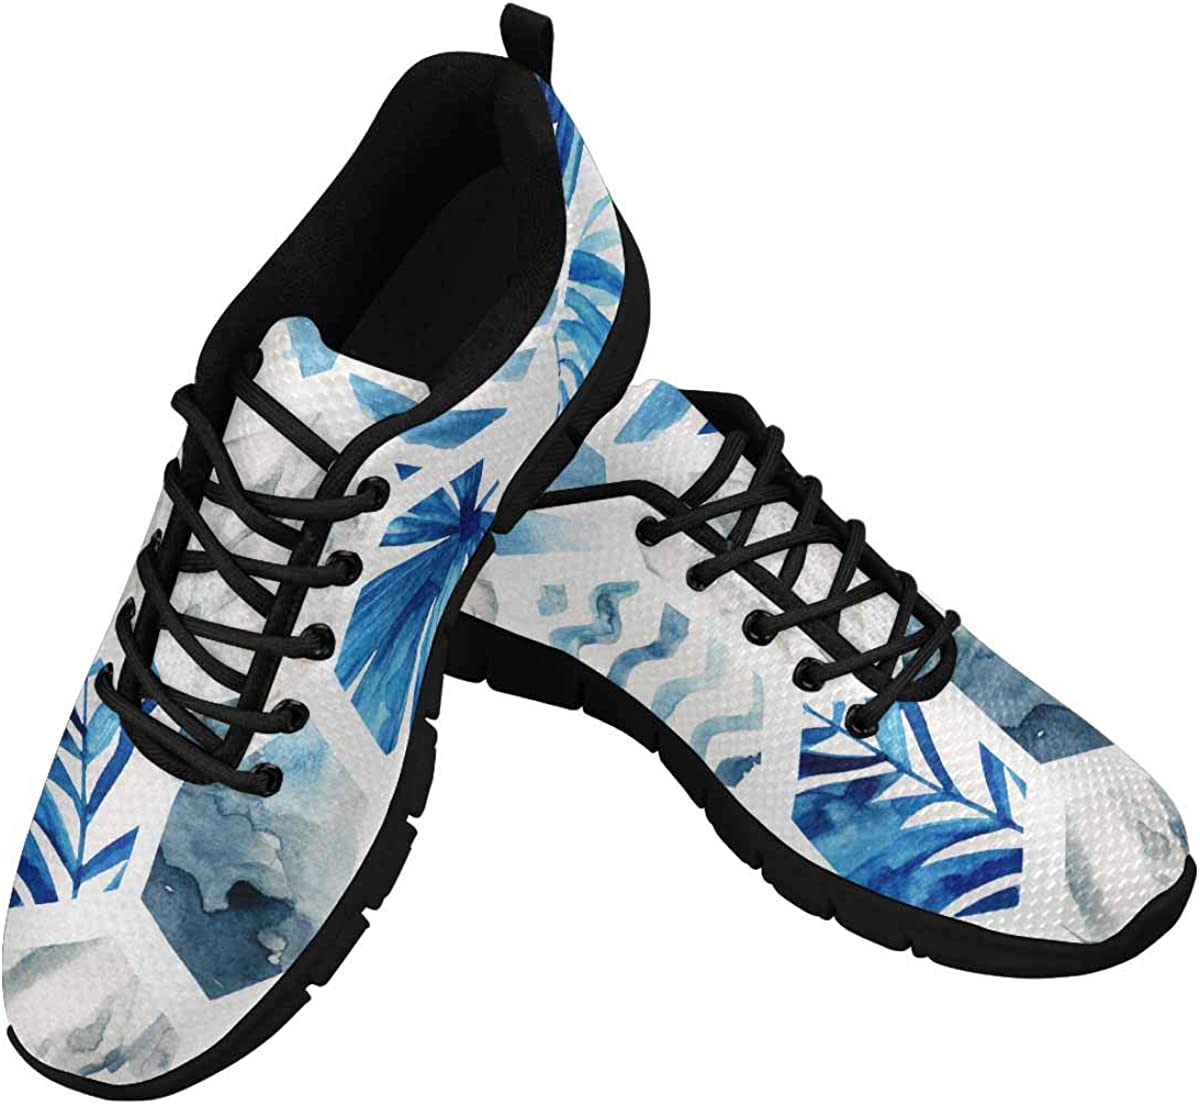 InterestPrint Palm Leaves, Waves, Stripes Women's Athletic Mesh Breathable Casual Sneaker